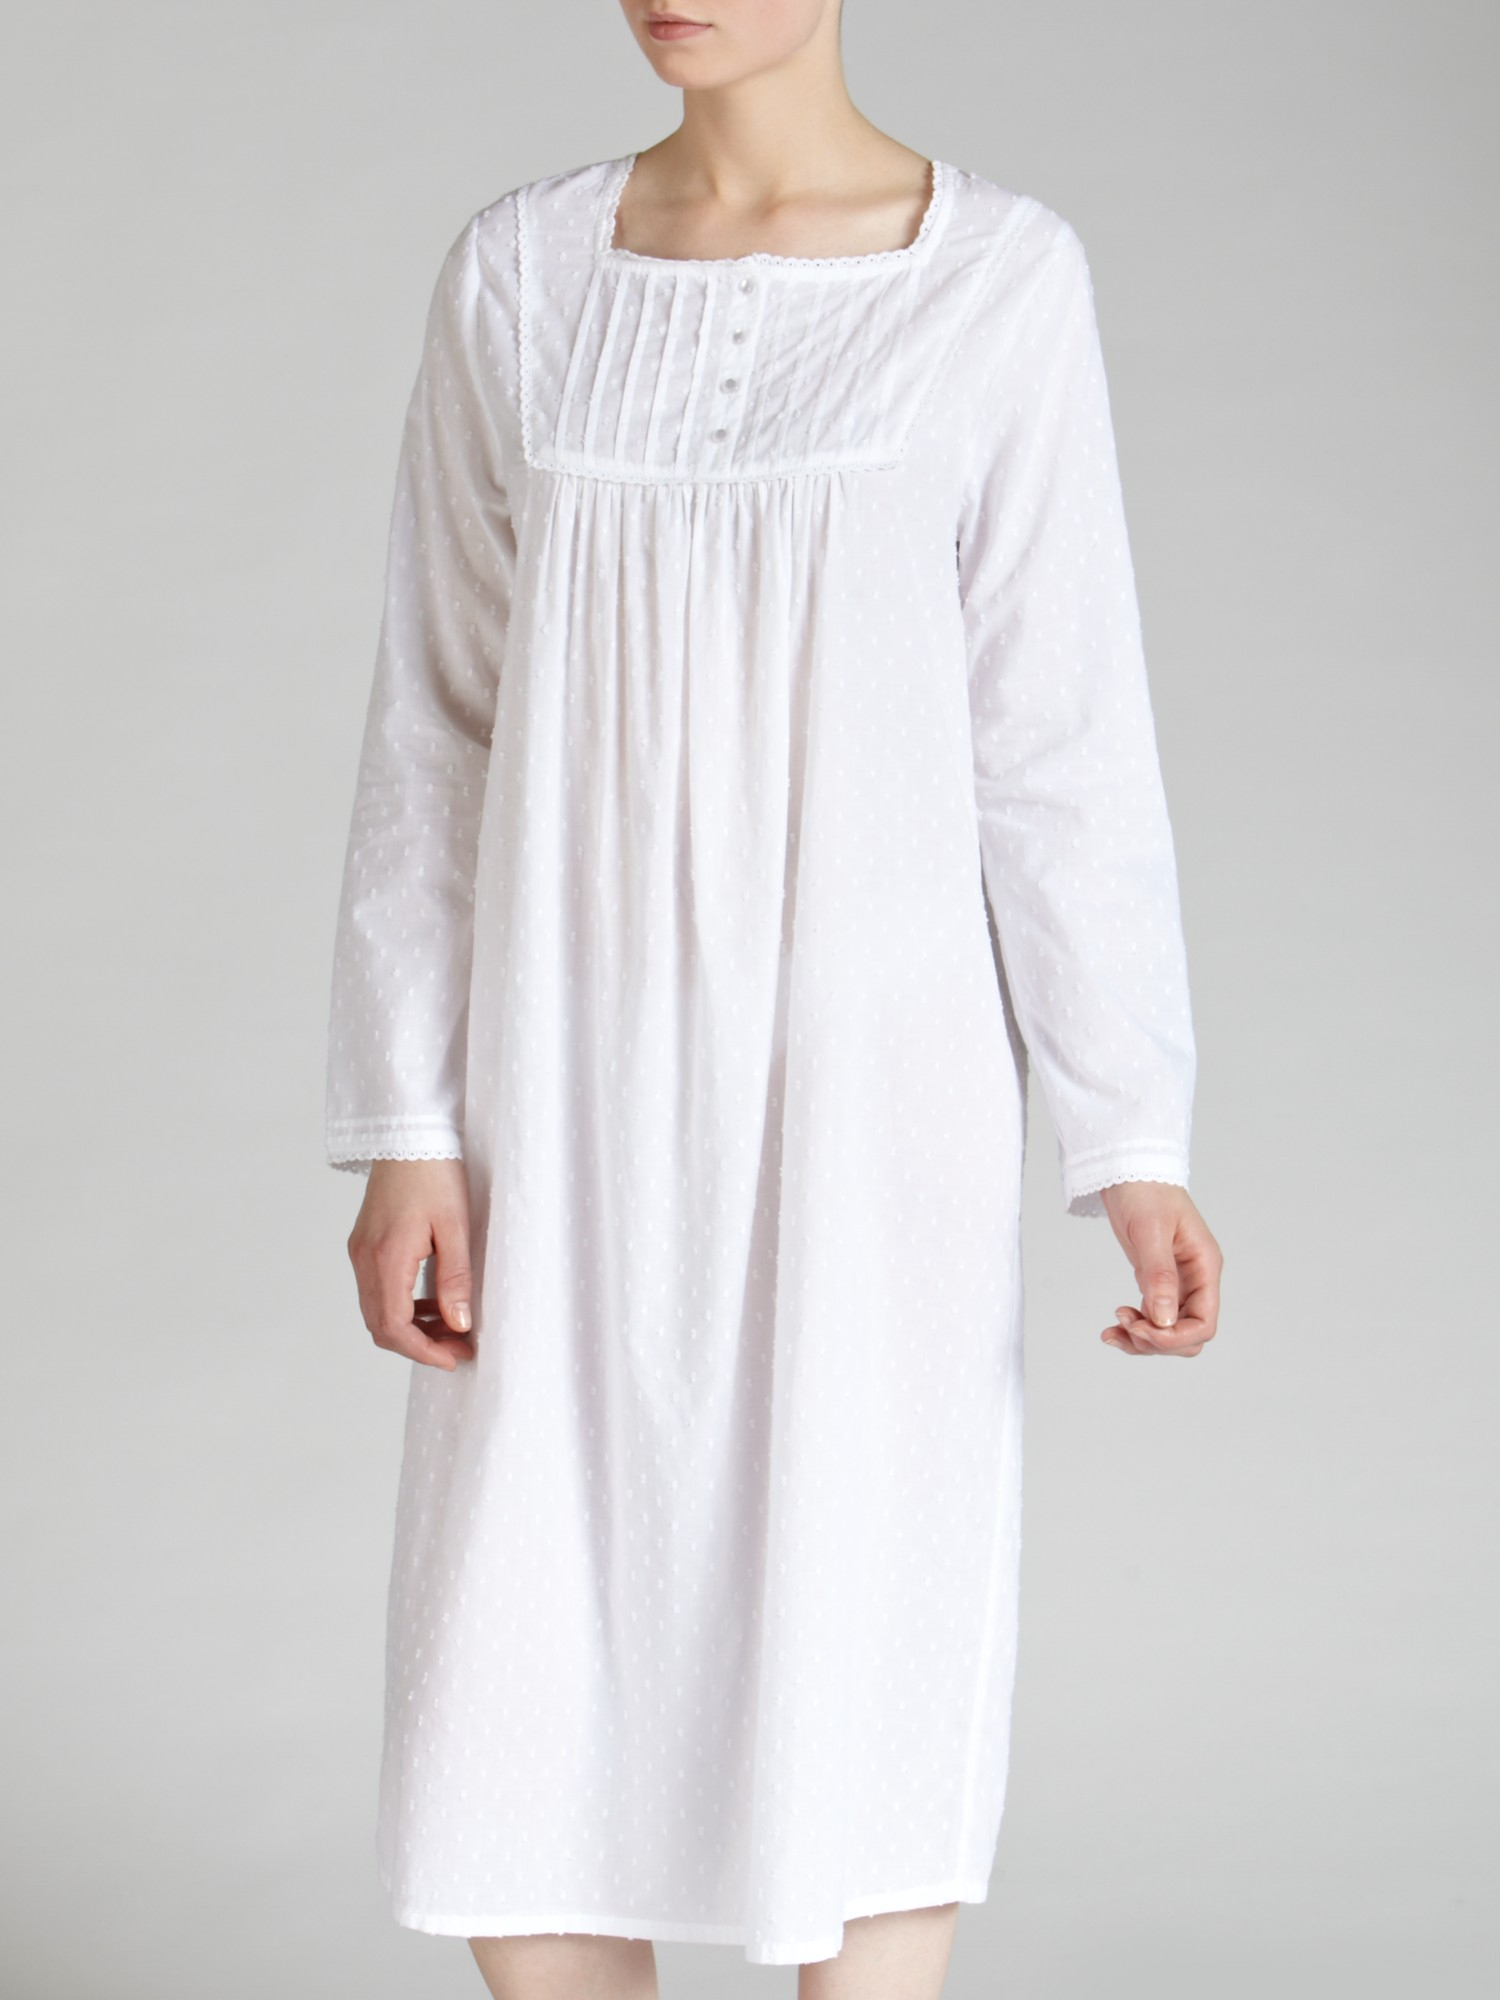 Magnificent Granny Night Gown Vignette - Wedding and flowers ...